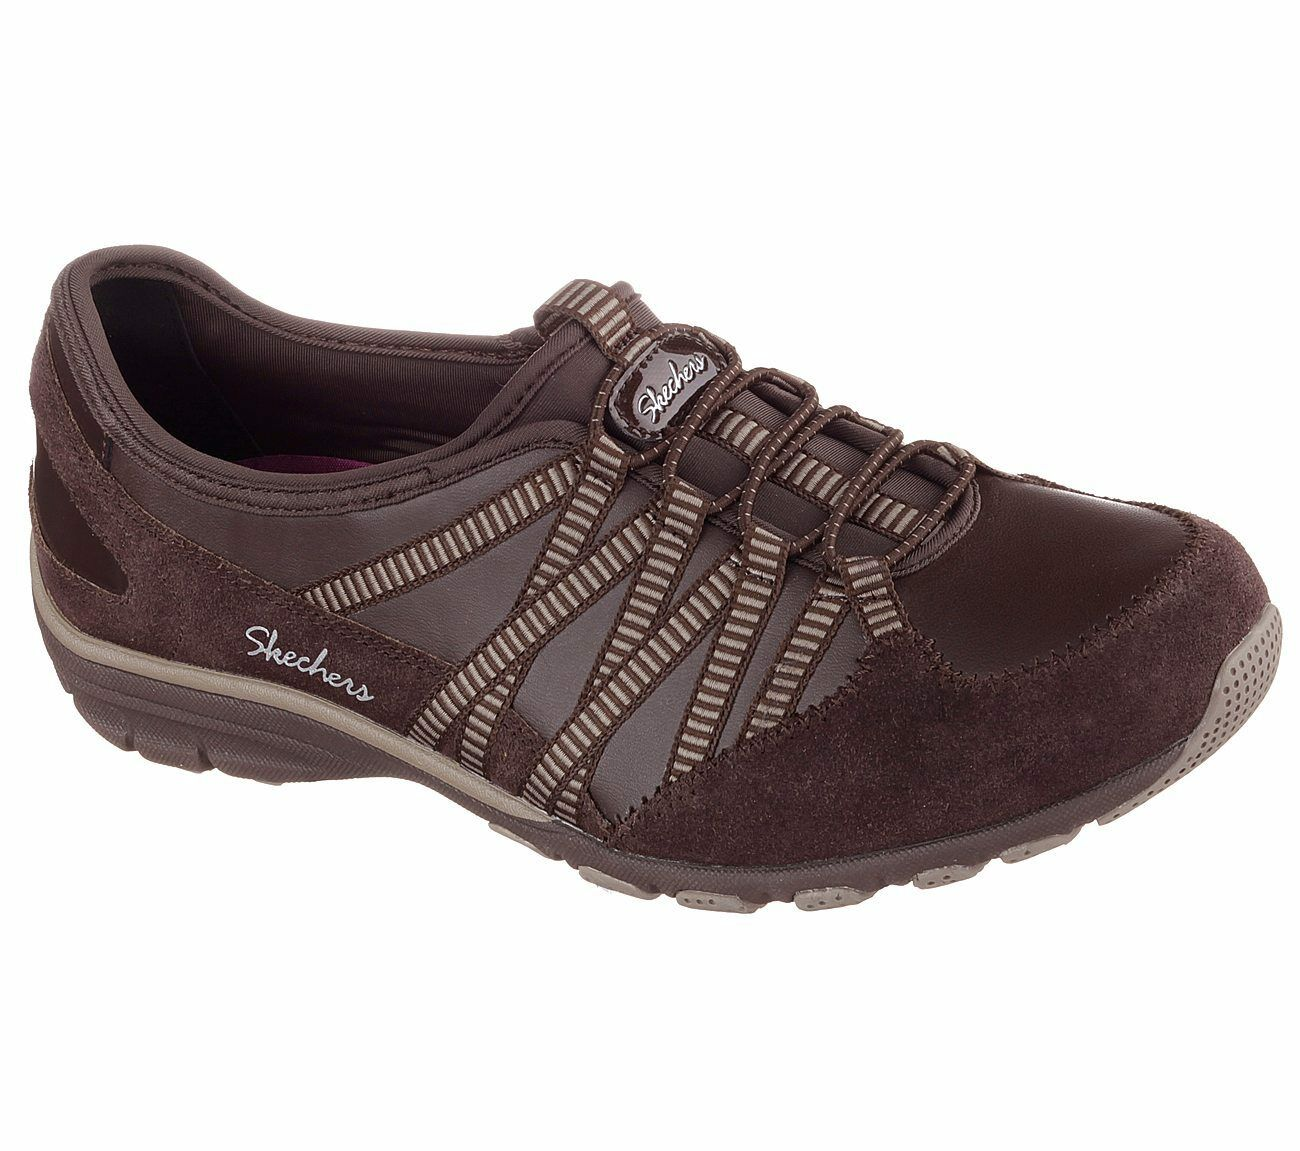 Womens Skechers Relaxed Fit: Conversations - Debate CHTP 22556 #BR